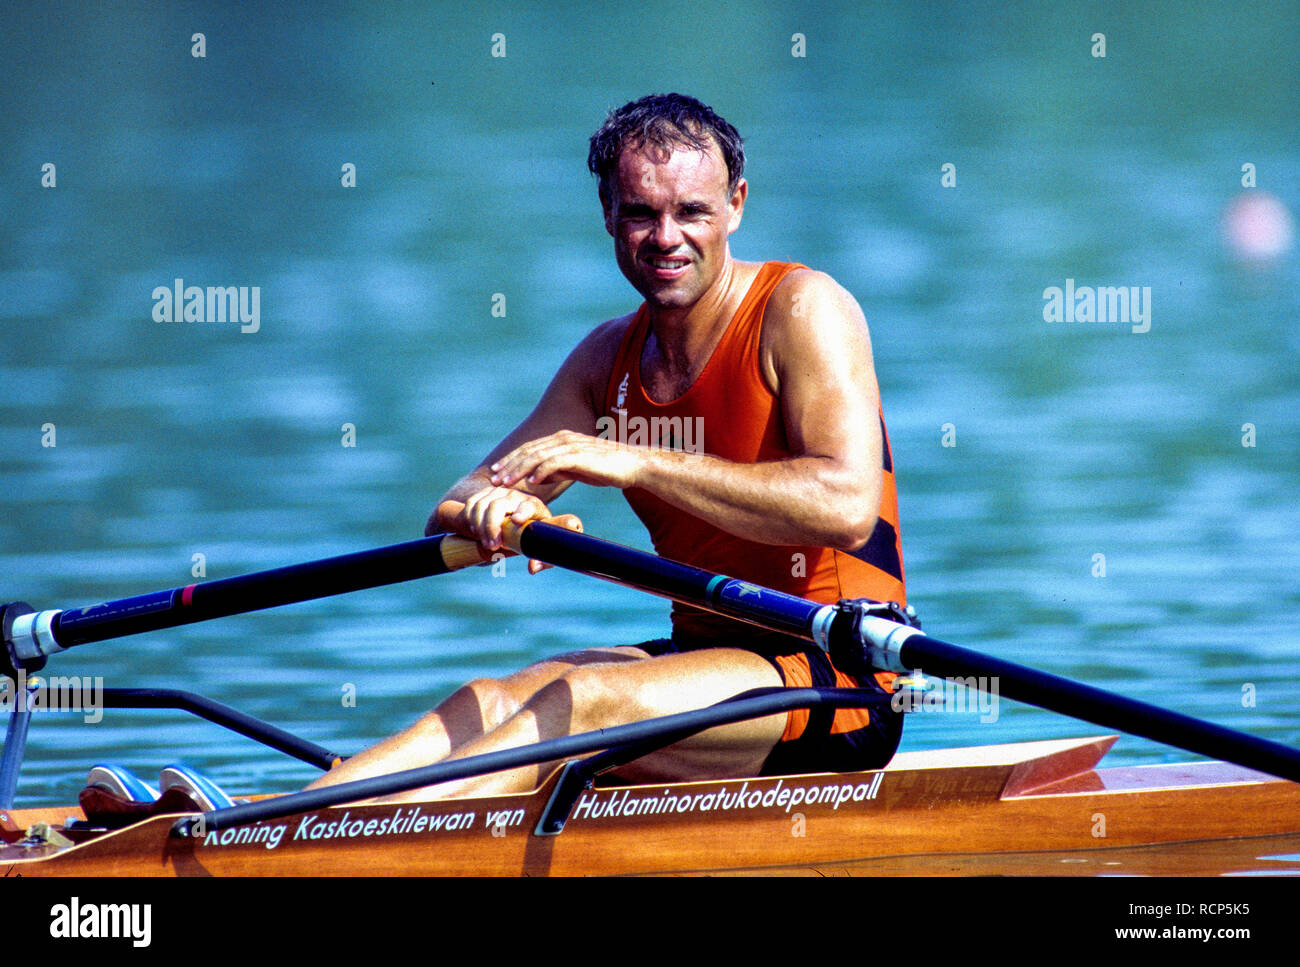 Barcelona Olympics 1992 - Lake Banyoles, SPAIN,   NED LM1X. Frans GOEBEL, [Mandatory Credit: Peter Spurrier/Intersport Images] Stock Photo